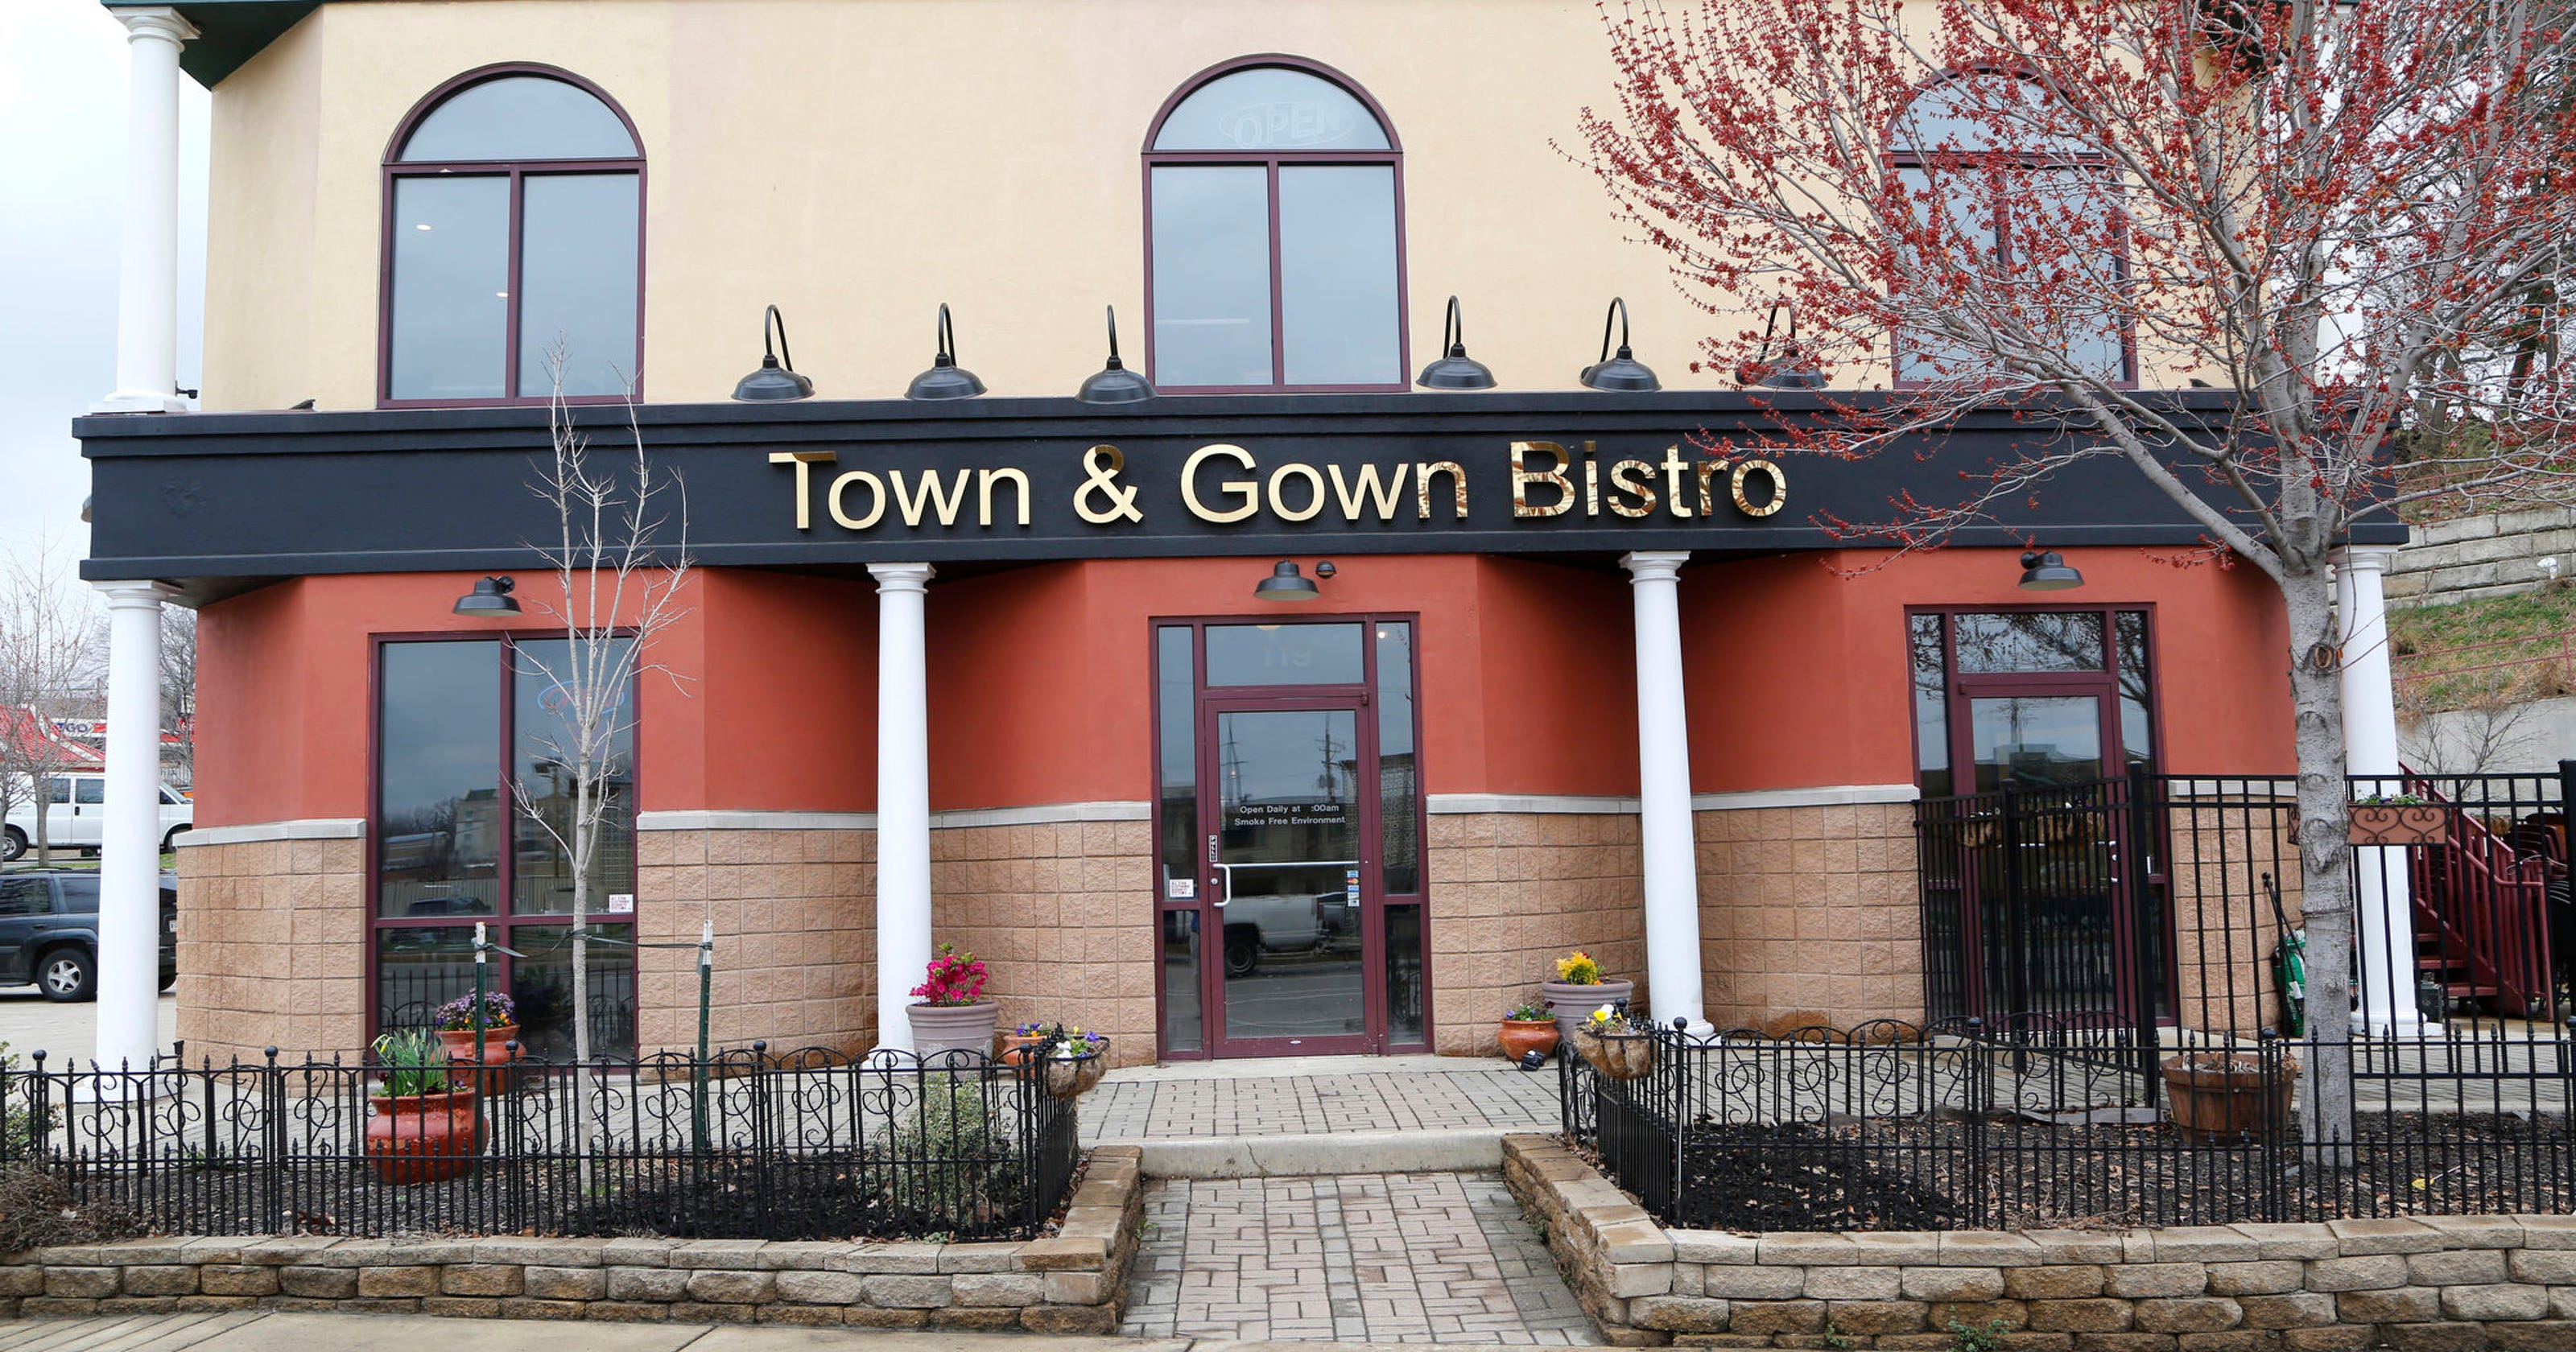 Town & Gown Bistro brings new life to old spot